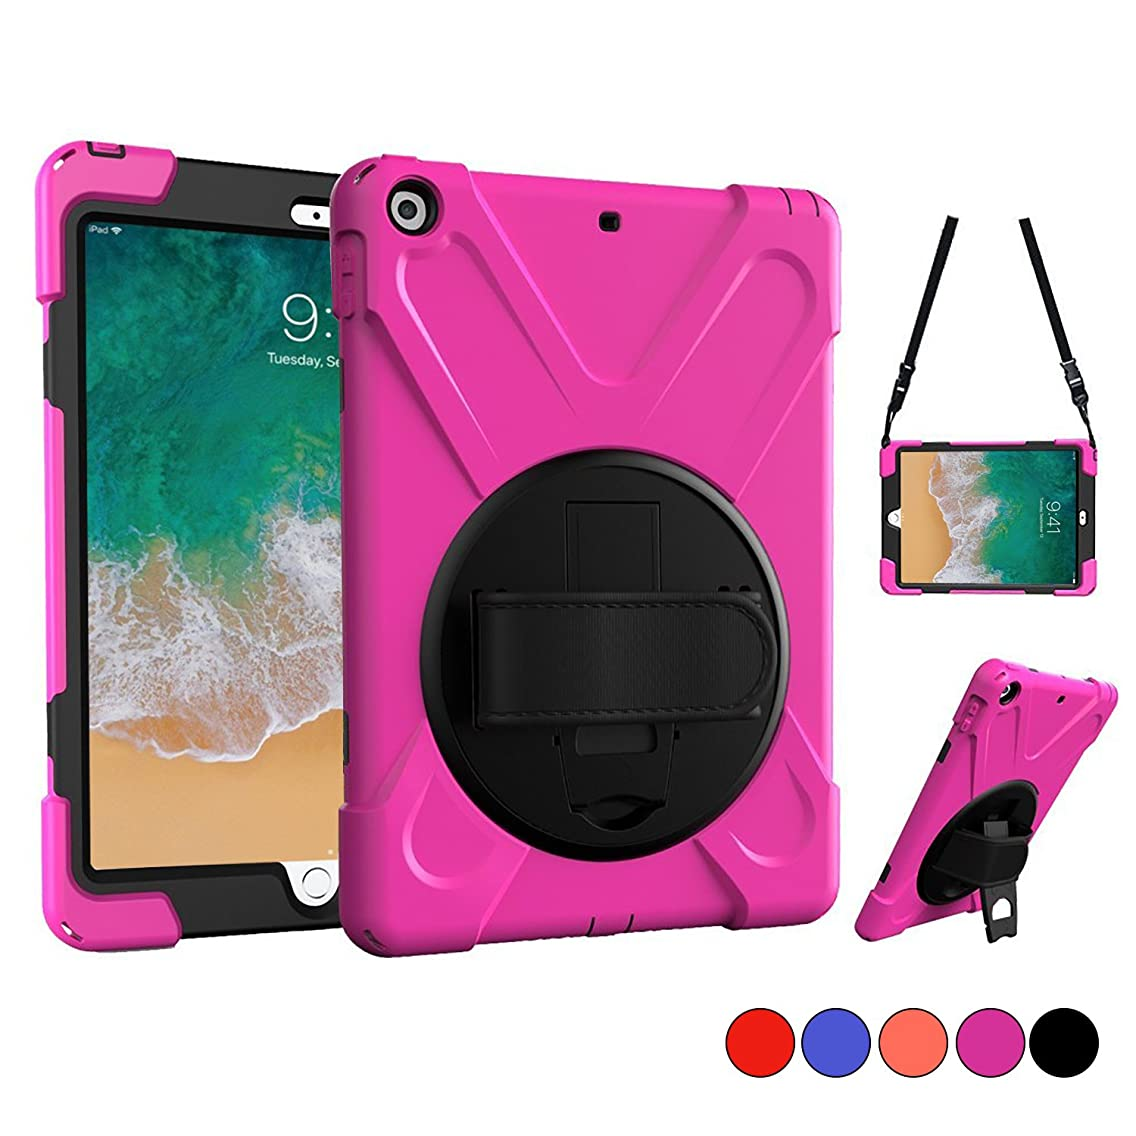 New iPad 9.7 2018 2017 Case, iPad 5th 6th Gen Case, Protective Case with Shoulder Strap, Hand Grip & 360 Rotating Stand, Heavy Duty Apple Tablet Cover for Kids 9.7 Inch A1822 A1823 A1893 A1954 (Pink)